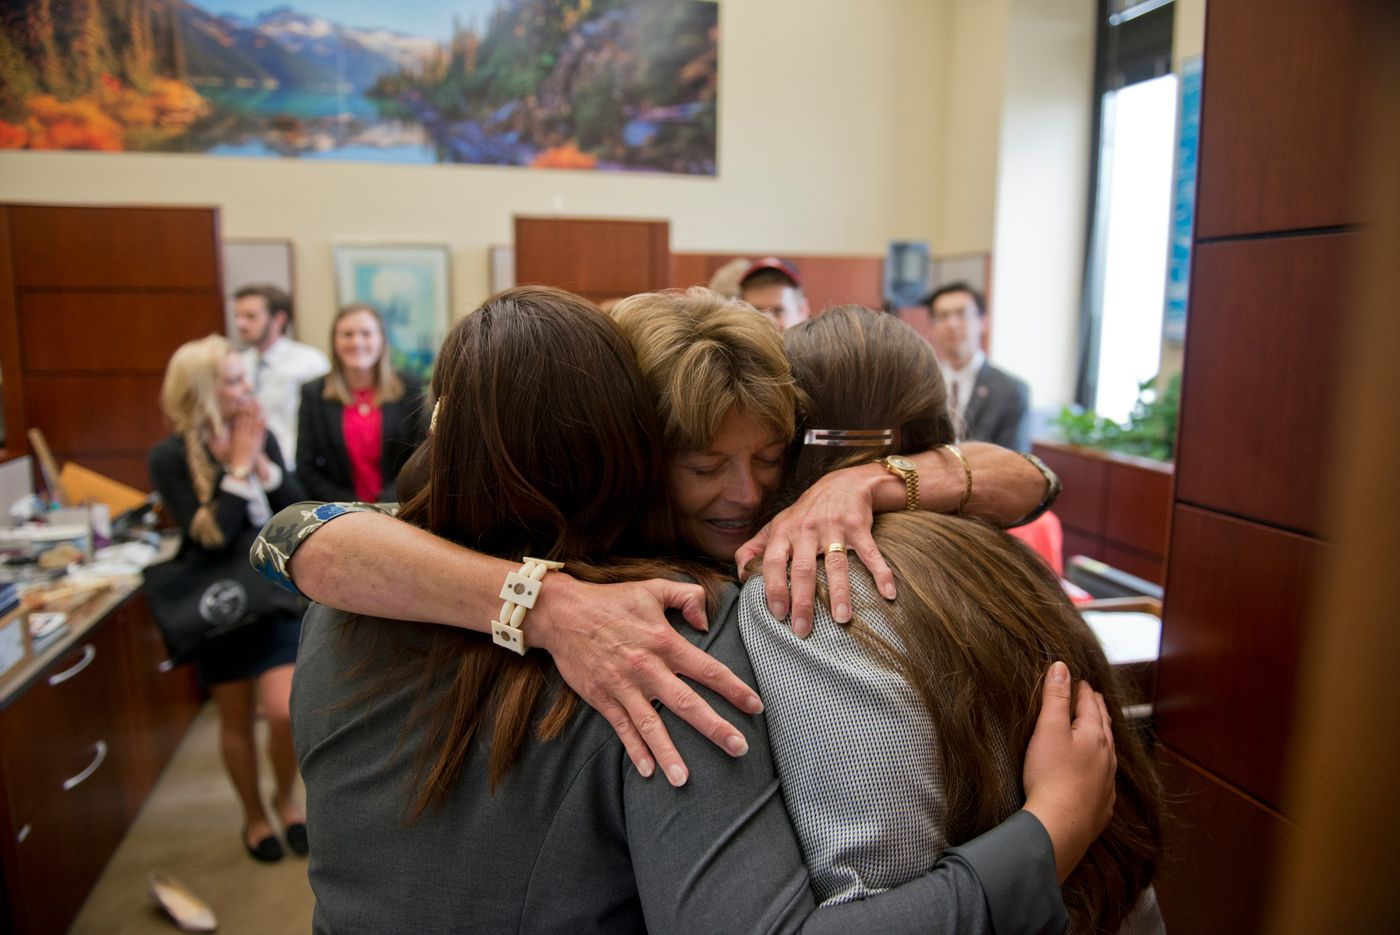 Sen. Lisa Murkowski hugs two interns who sang her the Alaska Flag Song on the last day of their month-long internship in D.C. Denae Benson is at left and Jenna Dreydoppel is at right. (Marc Lester / Alaska Dispatch News )